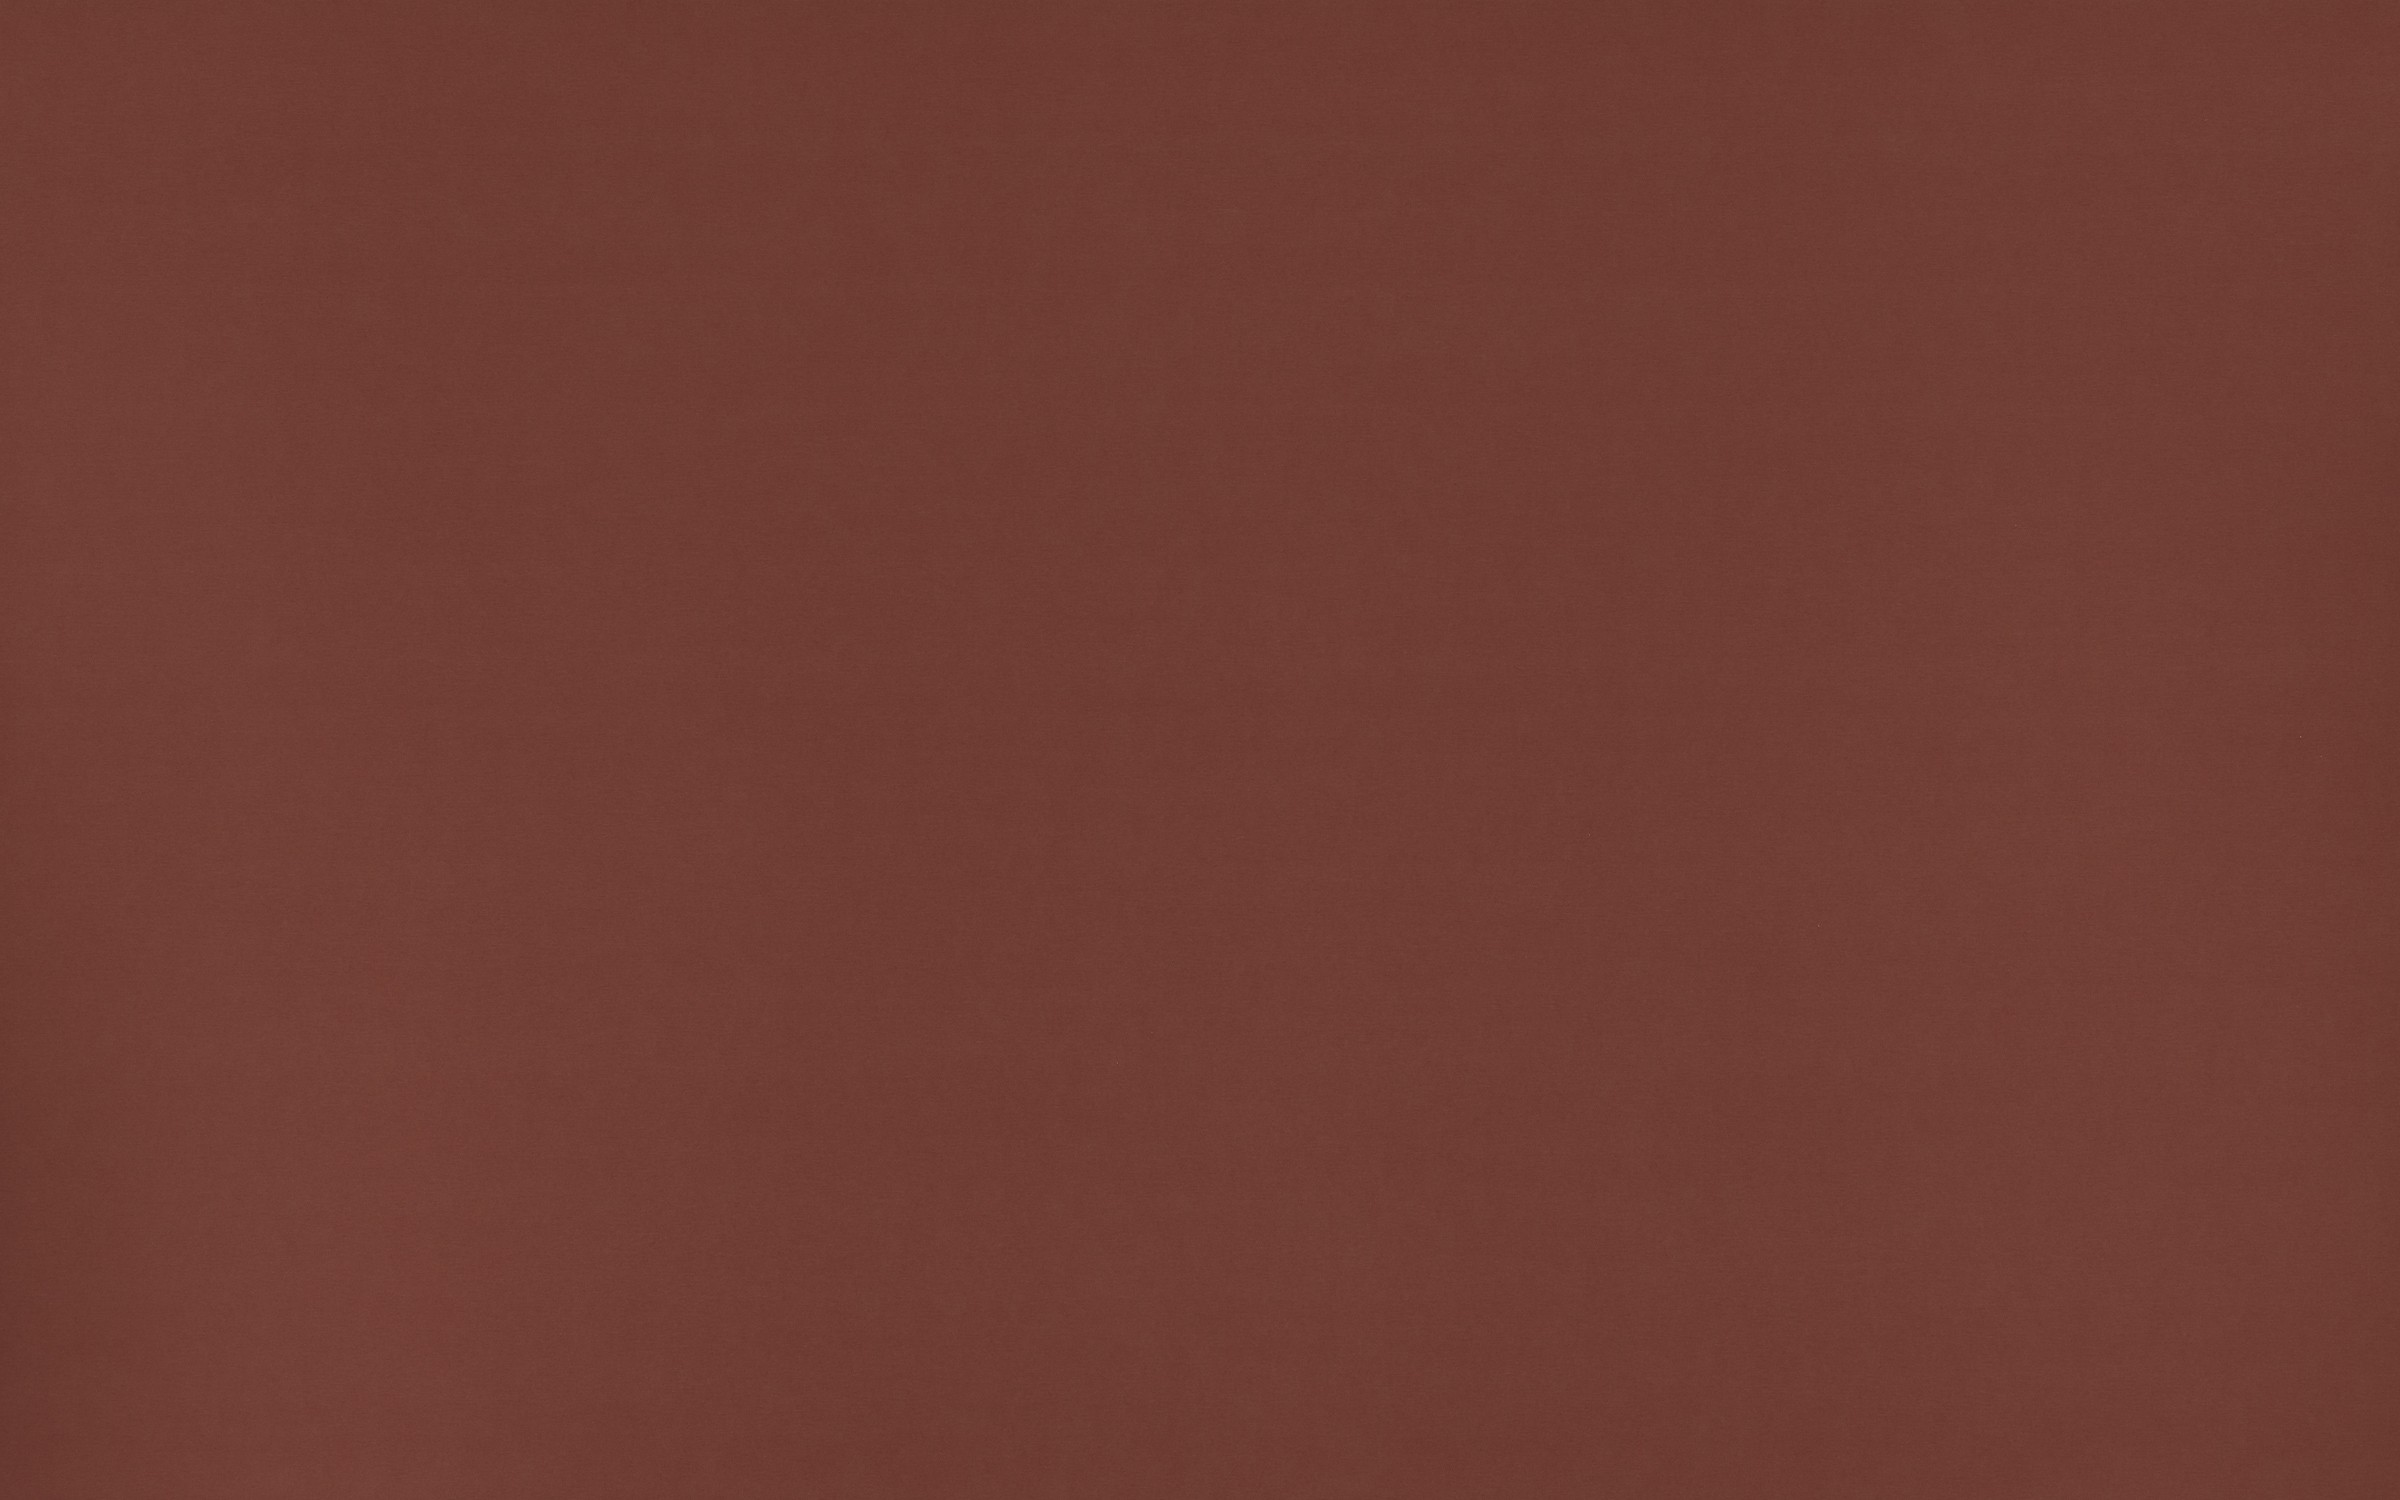 P324 Brushed Copper Brite - Arborite